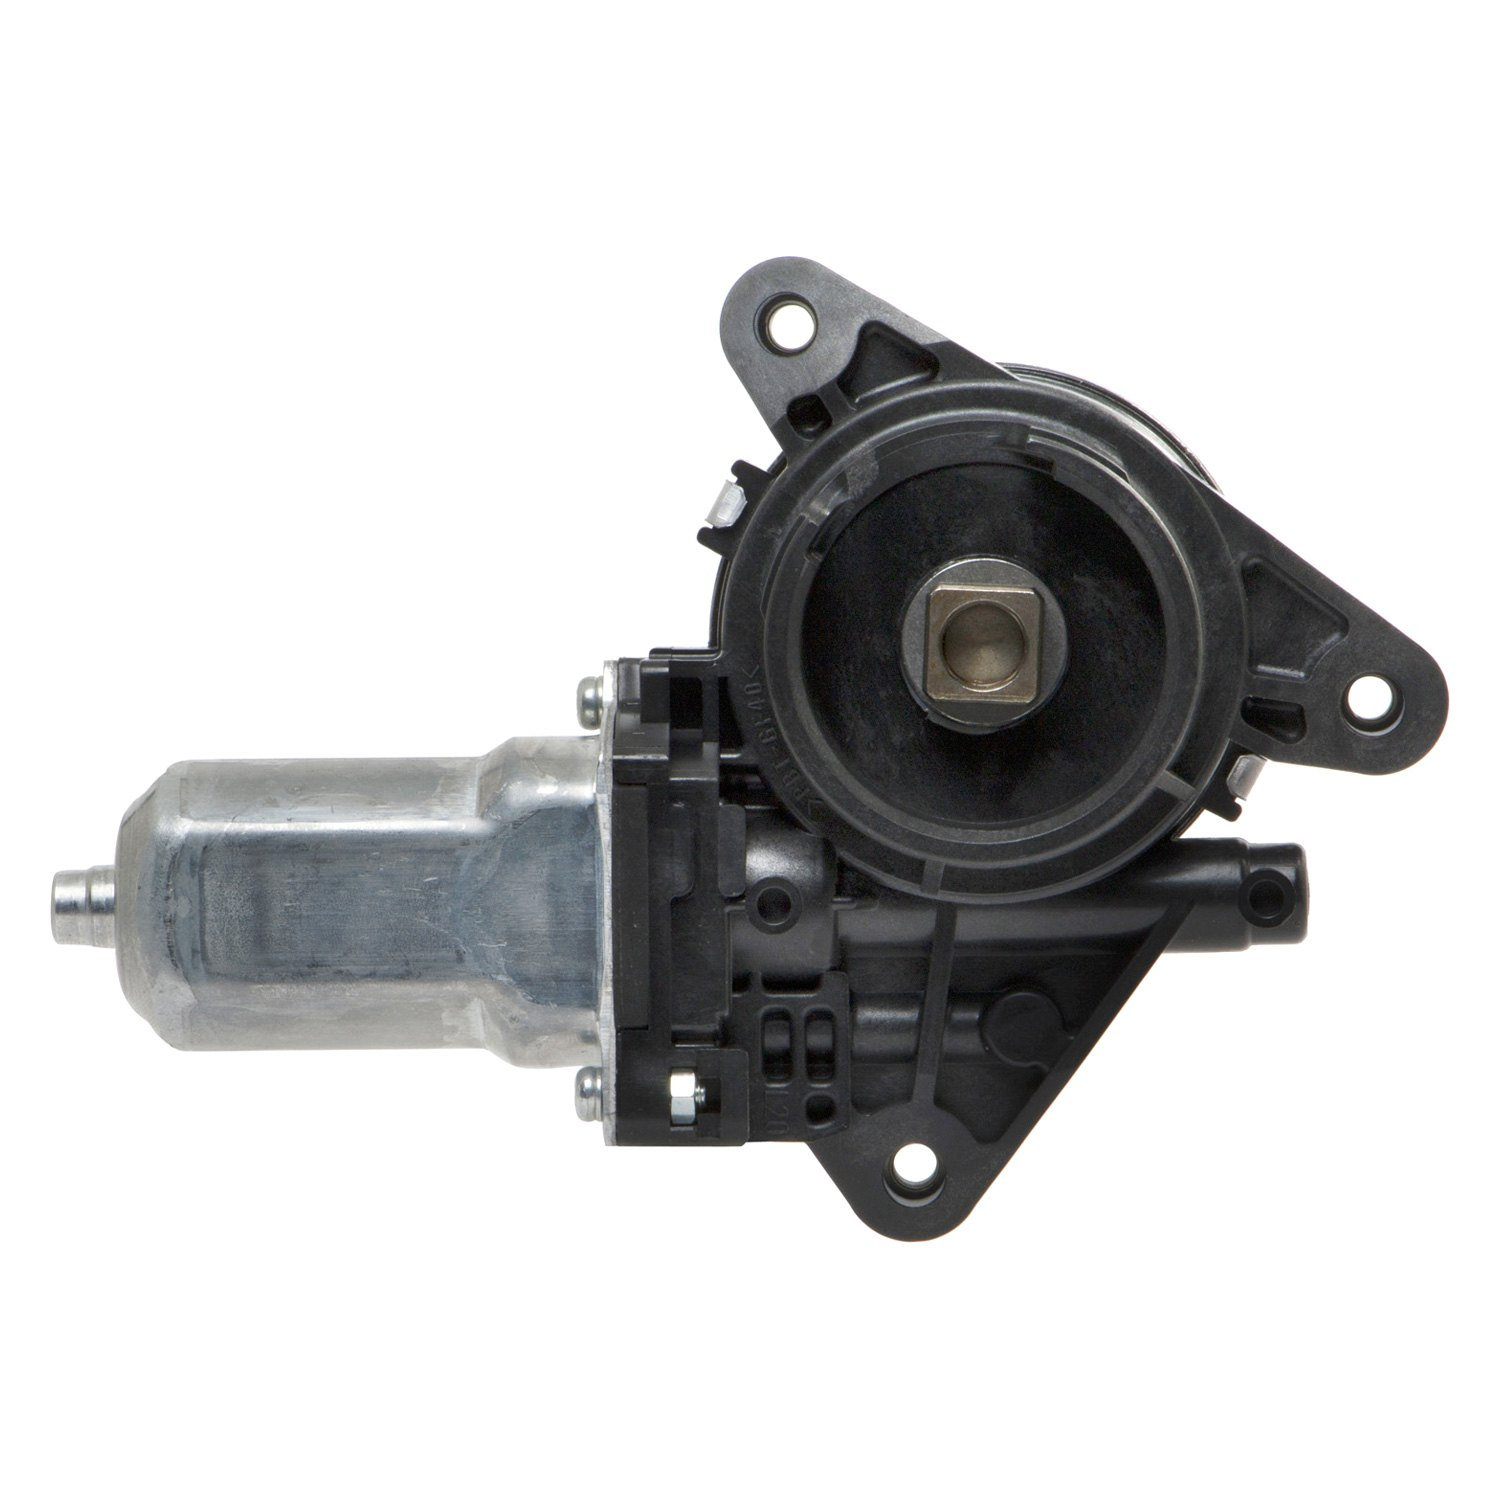 Acdelco Ford Escape 2008 Professional Power Window Motor